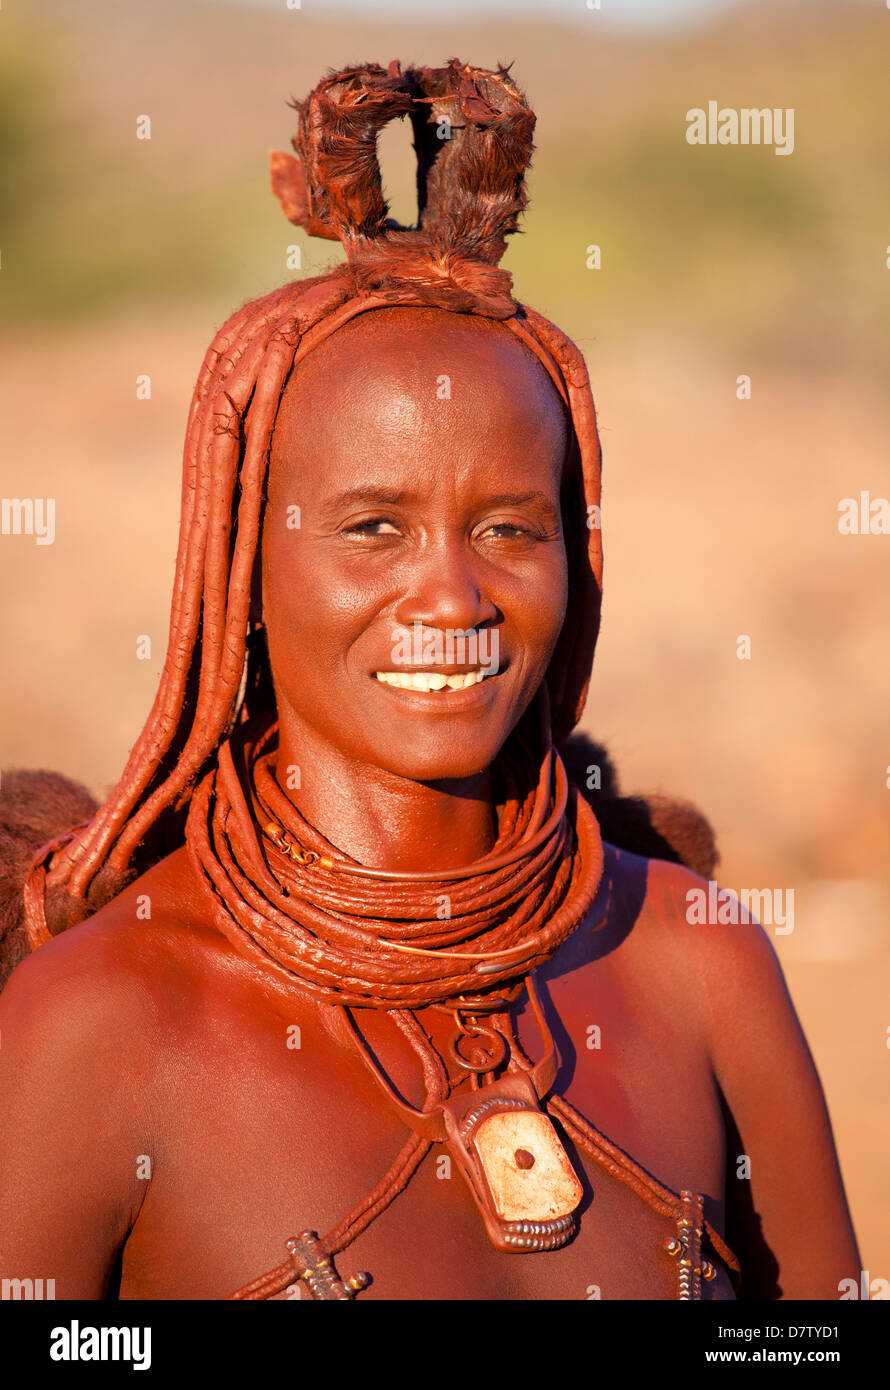 Himba woman inside a mud dwelling hut wearing dress and jewellery and covered in Otjize, Kunene Region, Kaokoland, - Stock Image